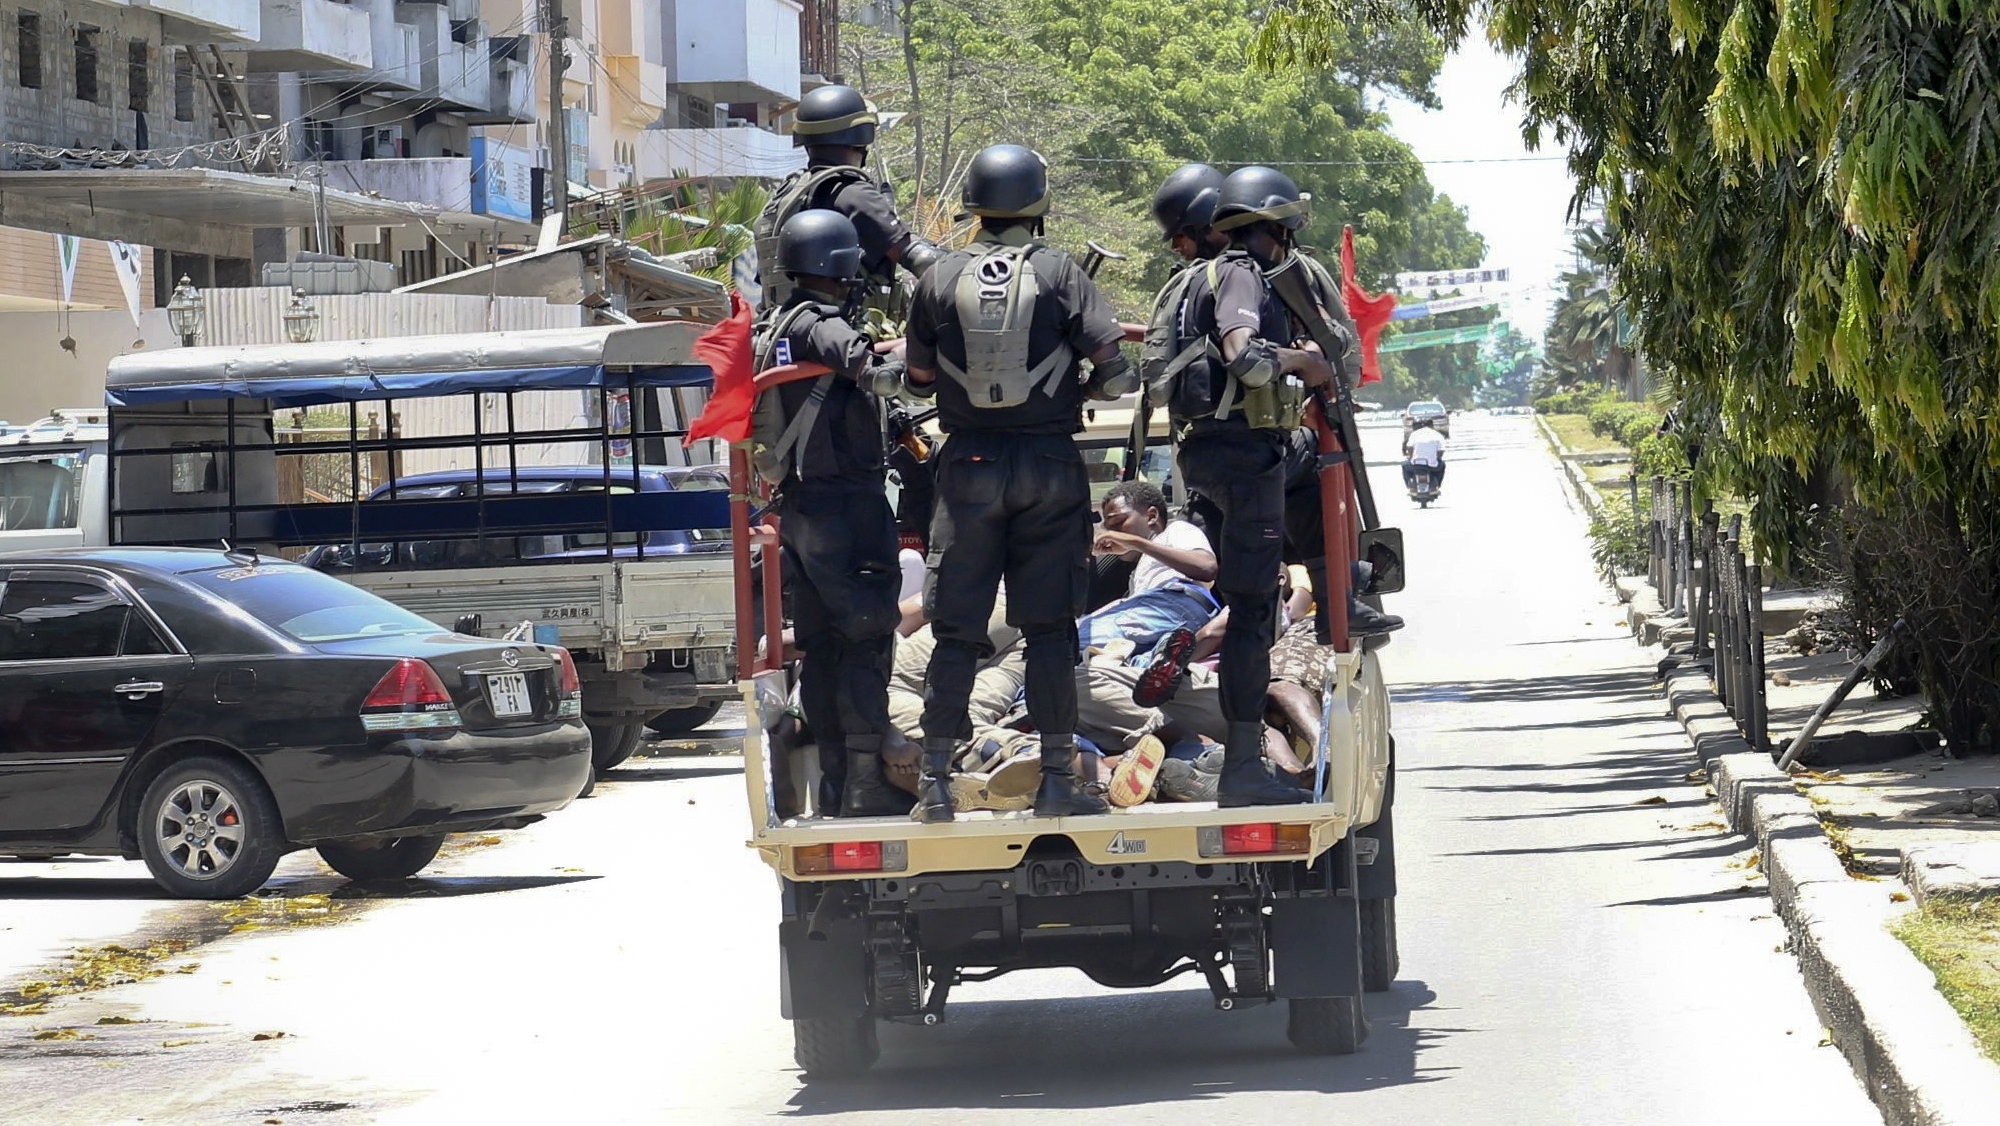 In this photo taken Monday, Oct. 26th, 2015 and made available Wednesday, Oct. 28th, 2015, police special forces ride in the back of a vehicle with unidentified men they had arrested, in the Darajani area of Stone Town, Zanzibar, a semi-autonomous island archipelago of Tanzania. Zanzibar's election commission chief announced Wednesday that the results of the island archipelago's presidential election have been nullified because of alleged irregularities, saying that the decision was taken because of several issues with the voting process, but did not say when another election would take place.